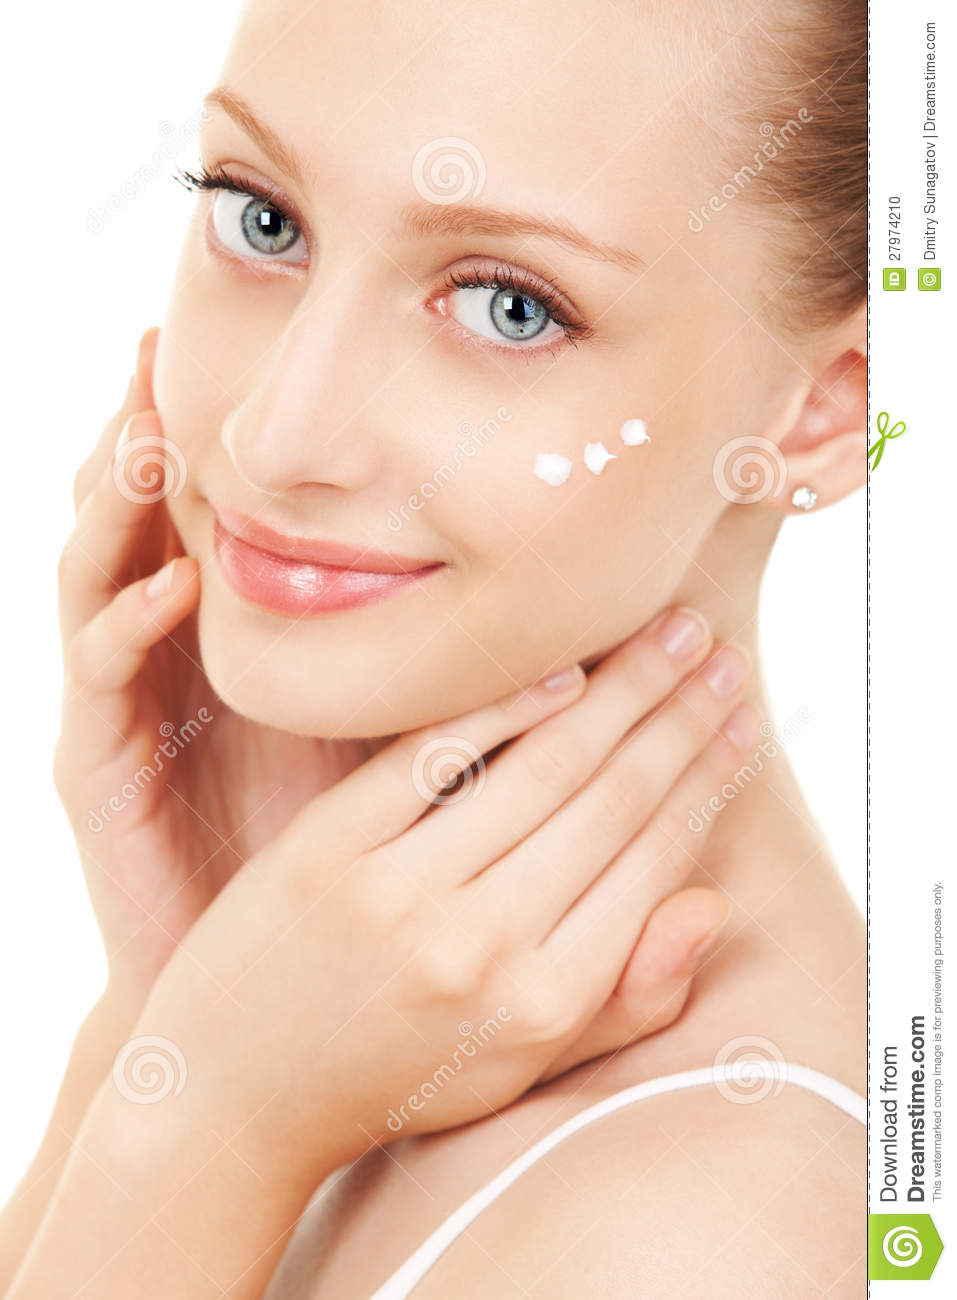 Woman Applying Cream To Her Face Stock Photo Image 27974210